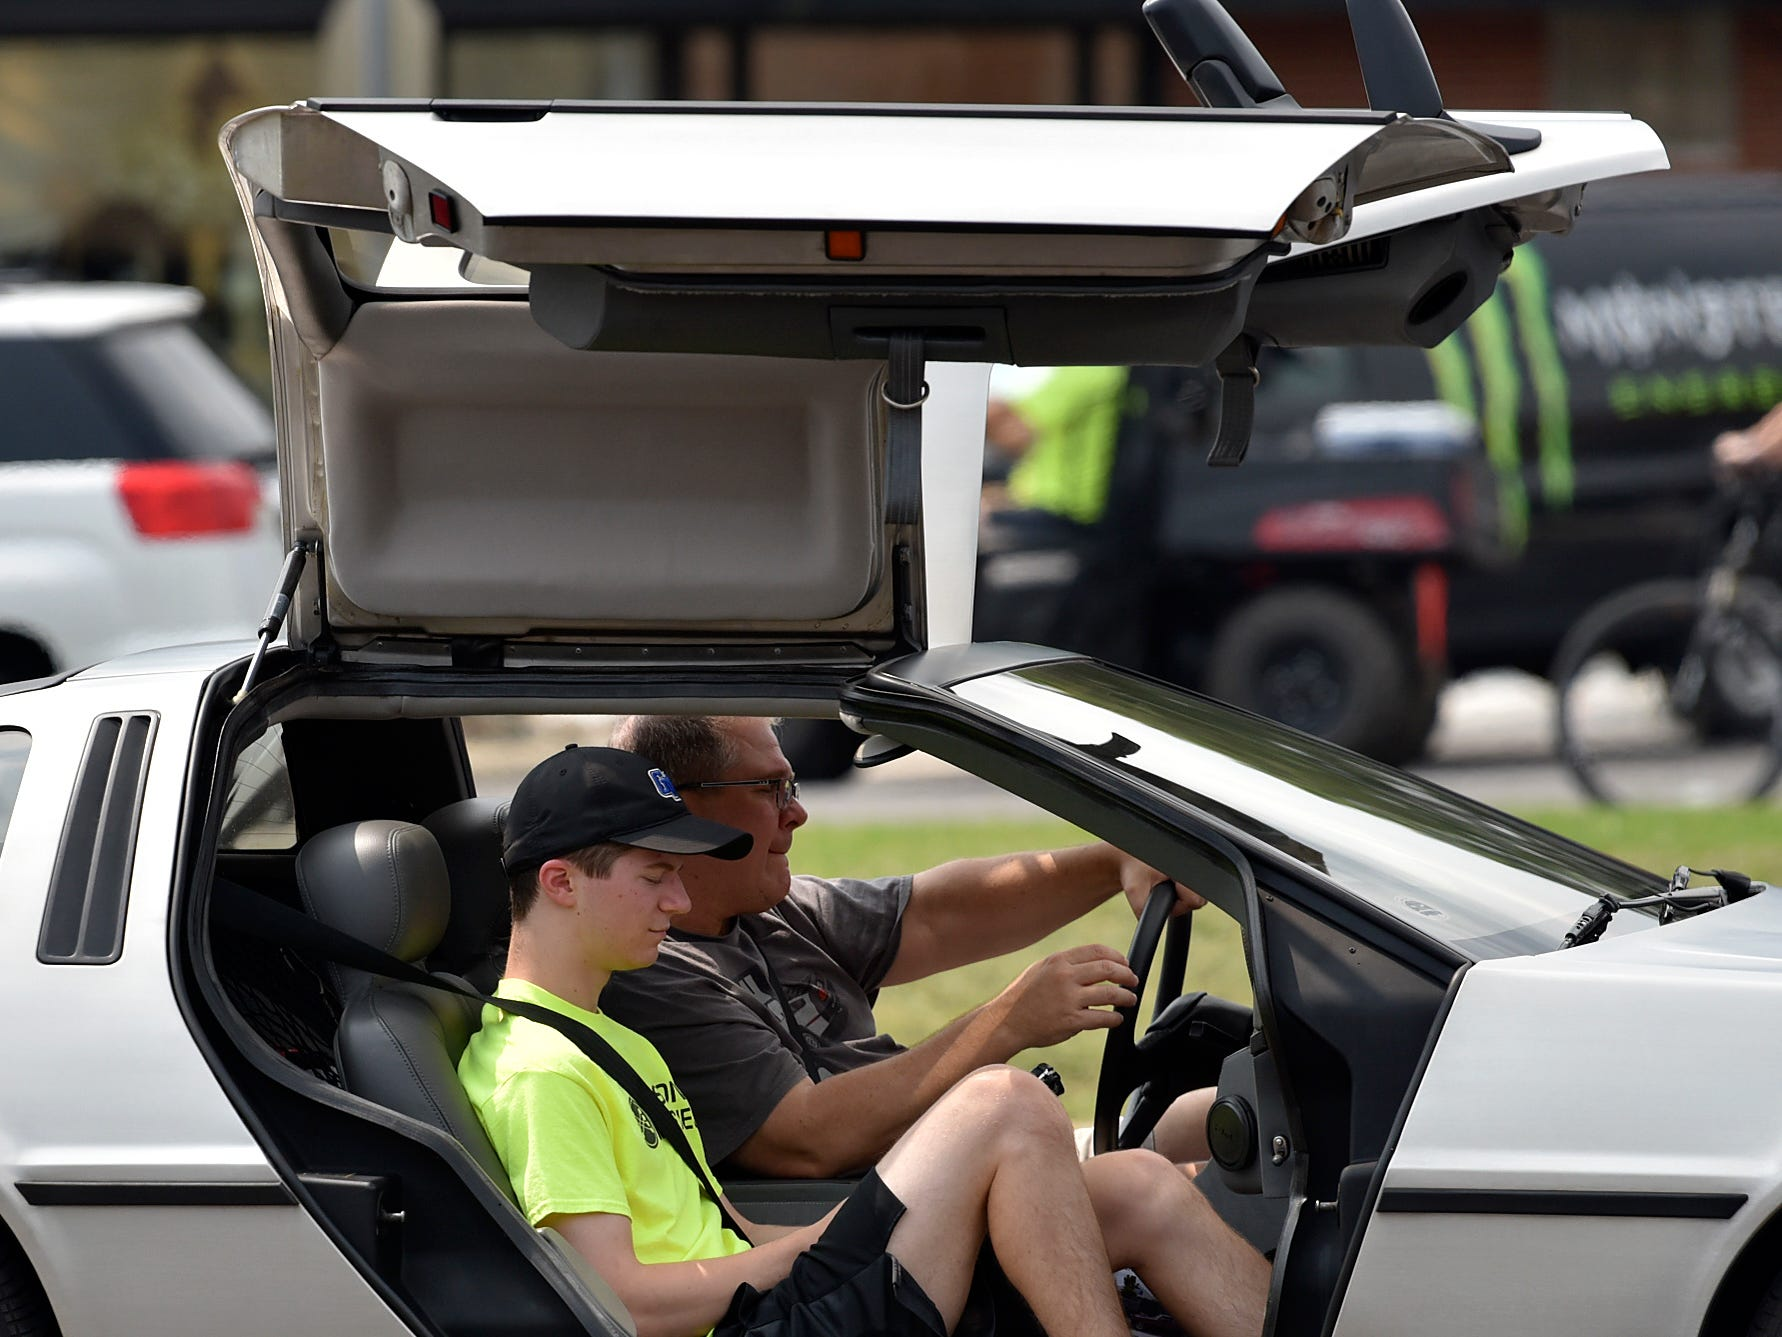 A pair of cruisers drive along Woodward Avenue with the gull doors of their Delorean open.